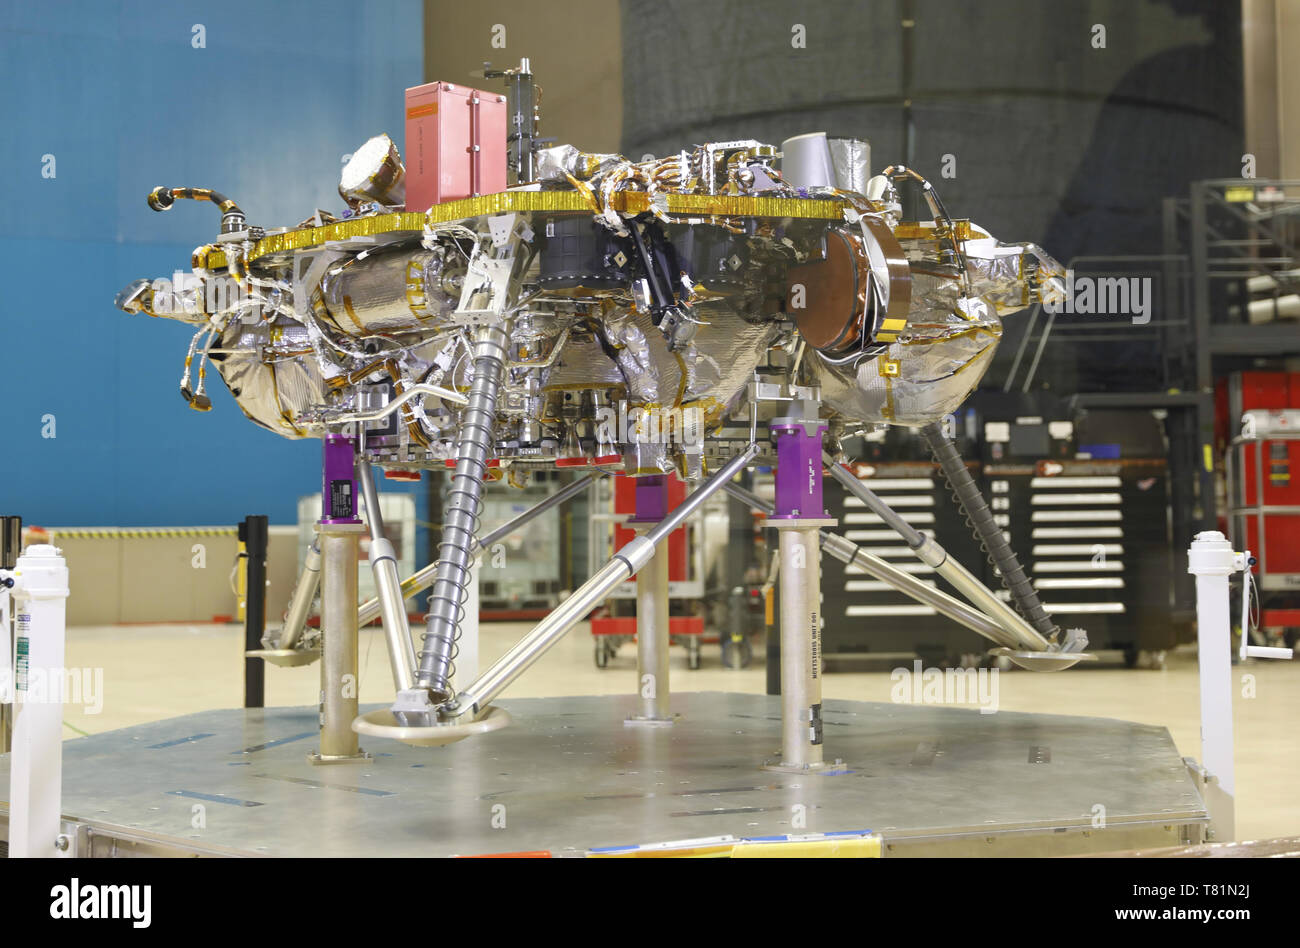 Insight Mars Lander - Stock Image